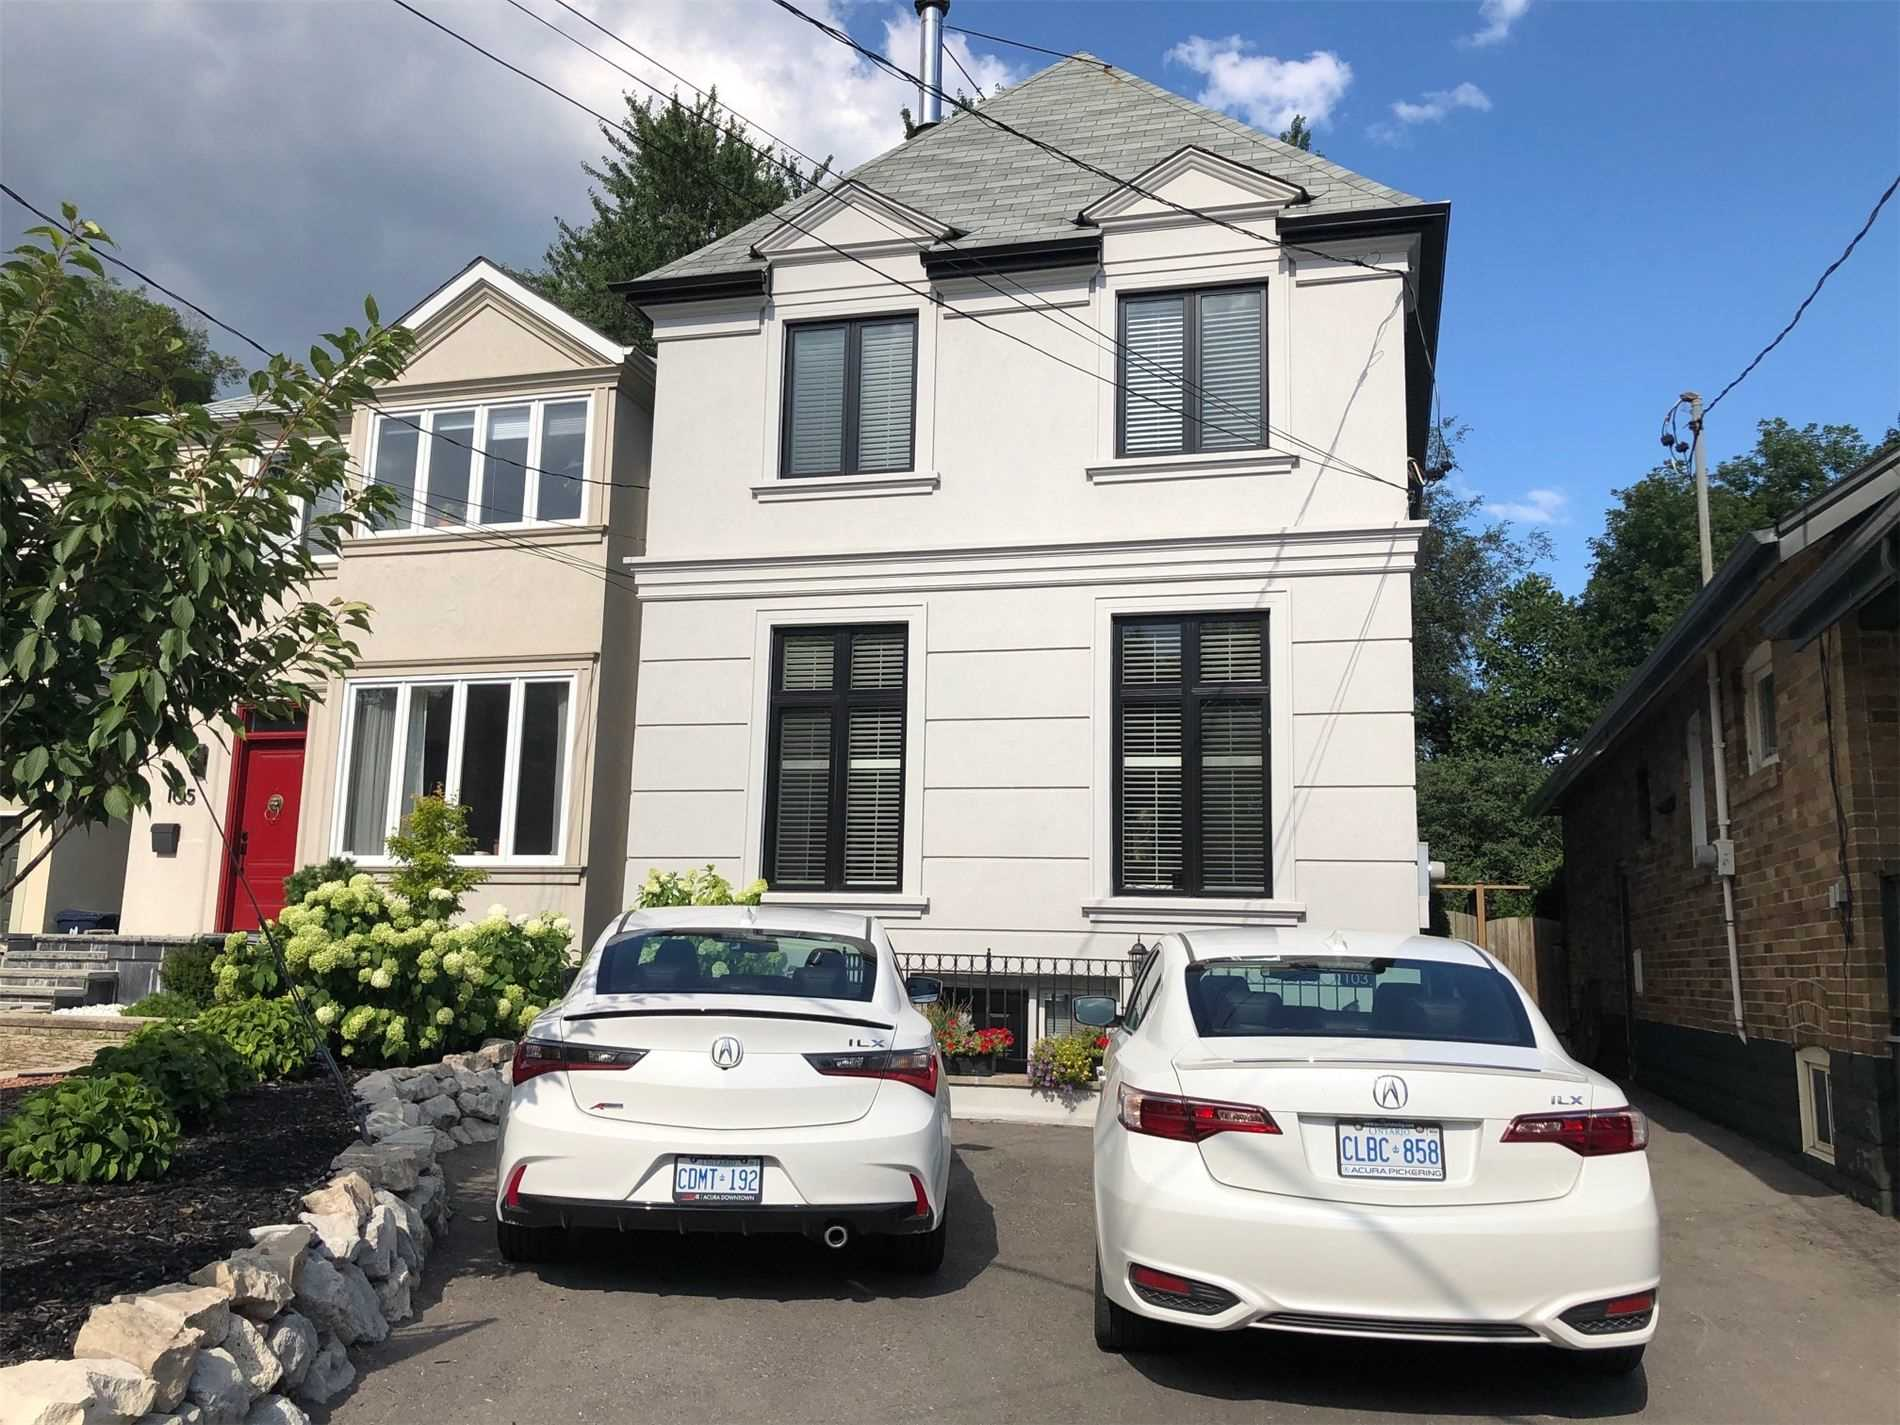 103 Cleveland St, Toronto, Ontario M4S2W4, 4 Bedrooms Bedrooms, 8 Rooms Rooms,4 BathroomsBathrooms,Detached,For Sale,Cleveland,C4849599